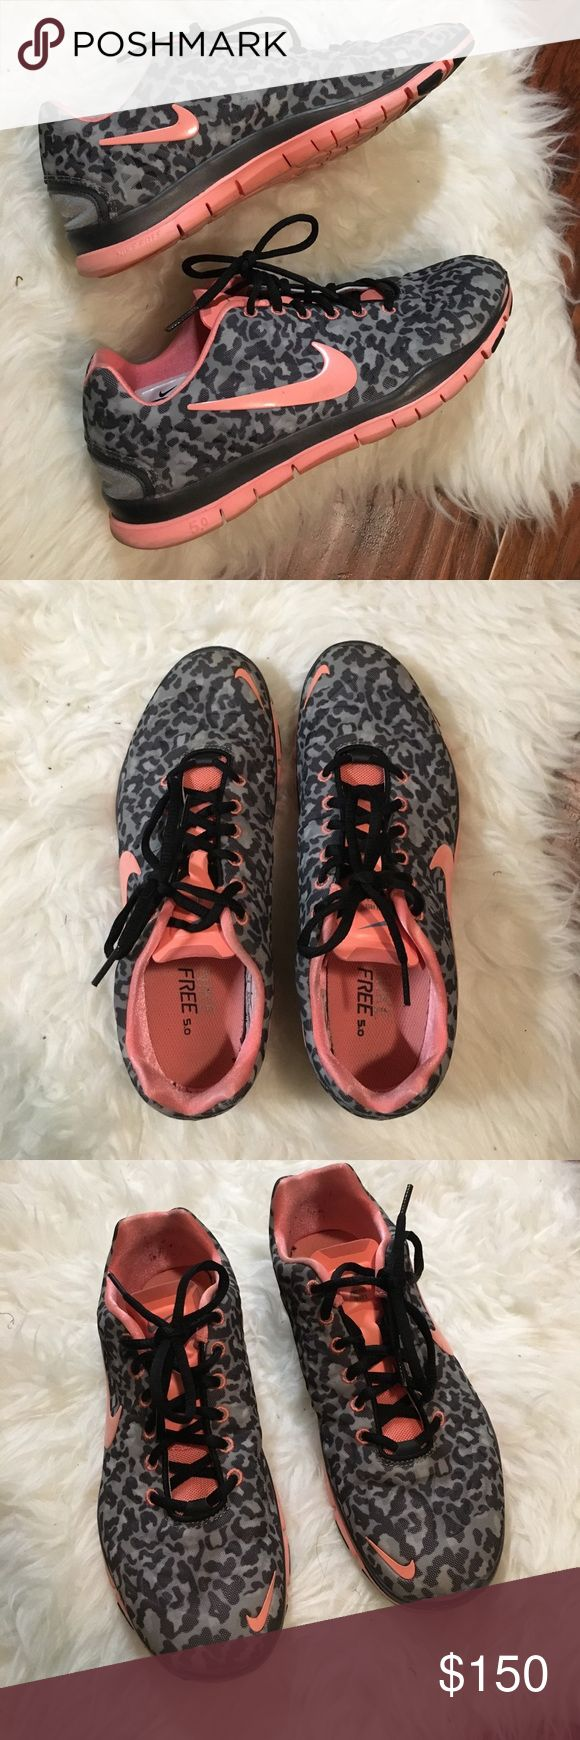 ❗️RARE!!! Nike Free 5.0 Grey Pink Leopard Print❗️ Super rare color combo. Great condition. US size 9 Nike Shoes Sneakers